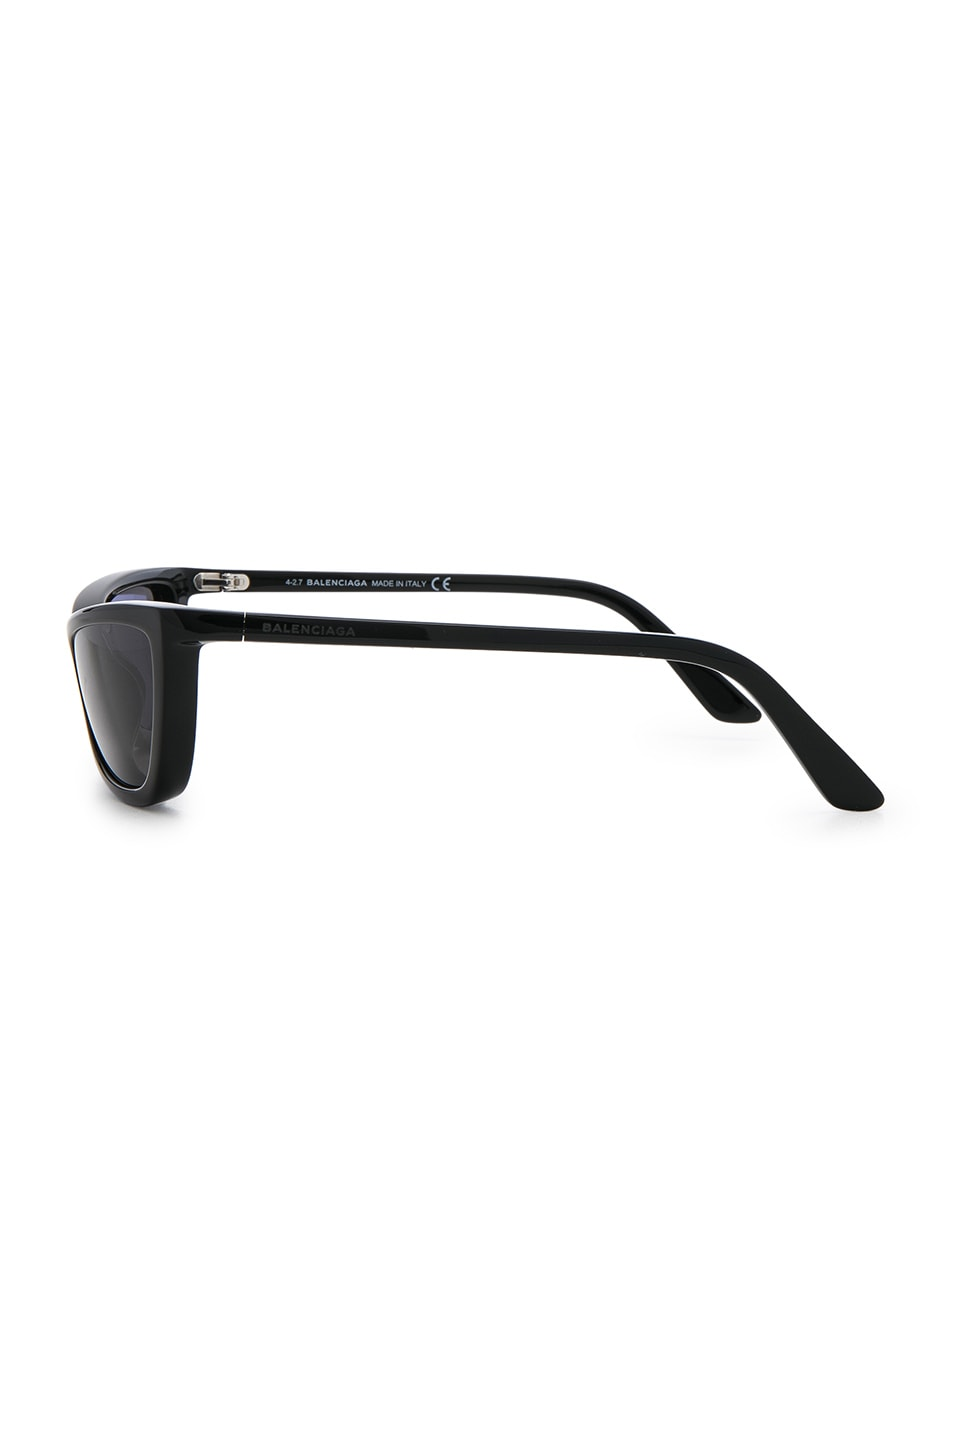 Image 3 of Balenciaga Slim Cateye Sunglasses in Shiny Black with Smokey Lense